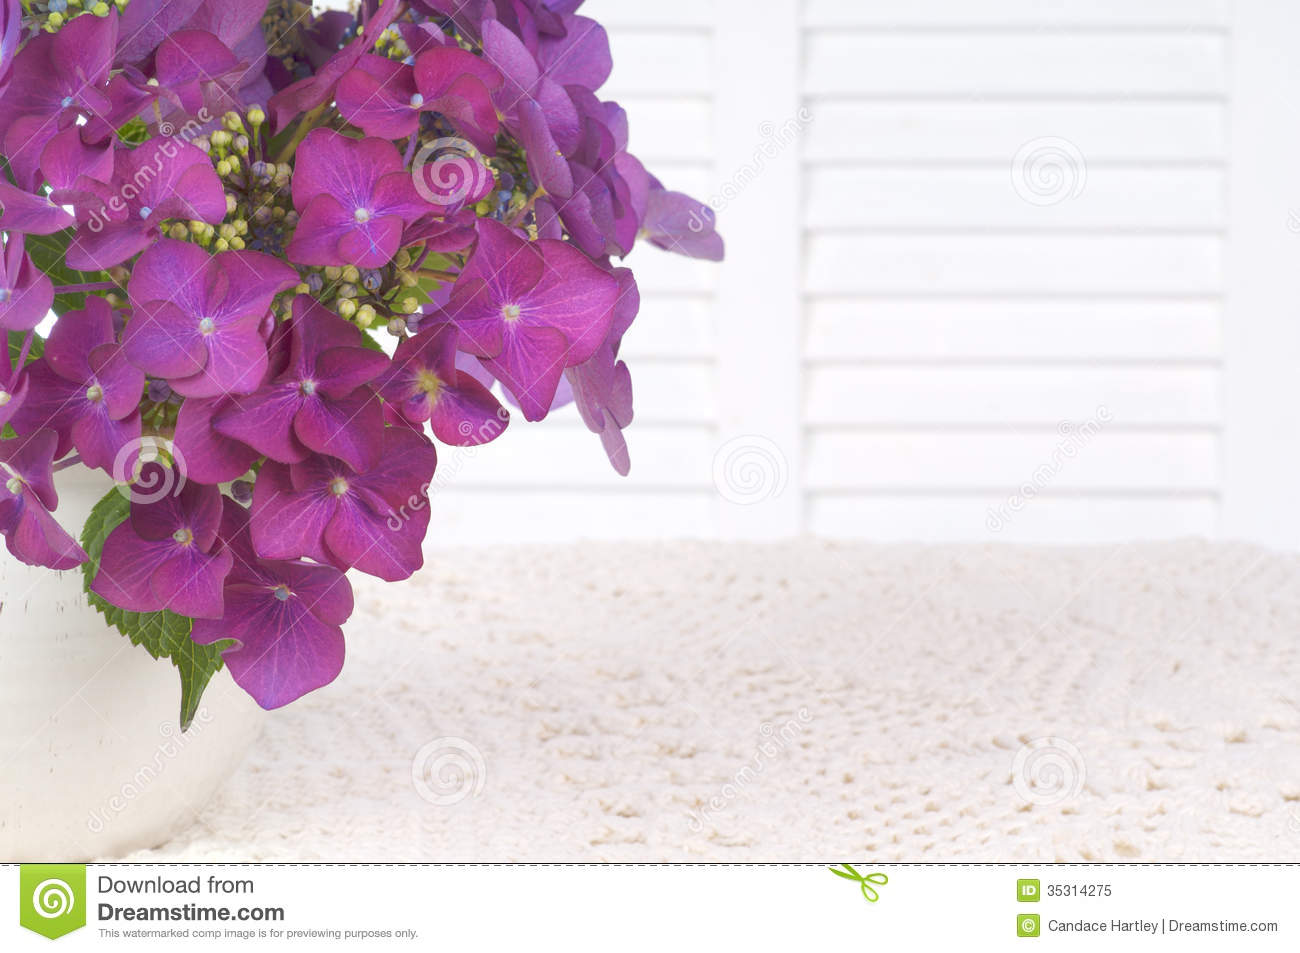 Hydrangea Flowers in a Vase on White Table Cloth with White Background Area, Room or Space for Copy, Text, or your Words.